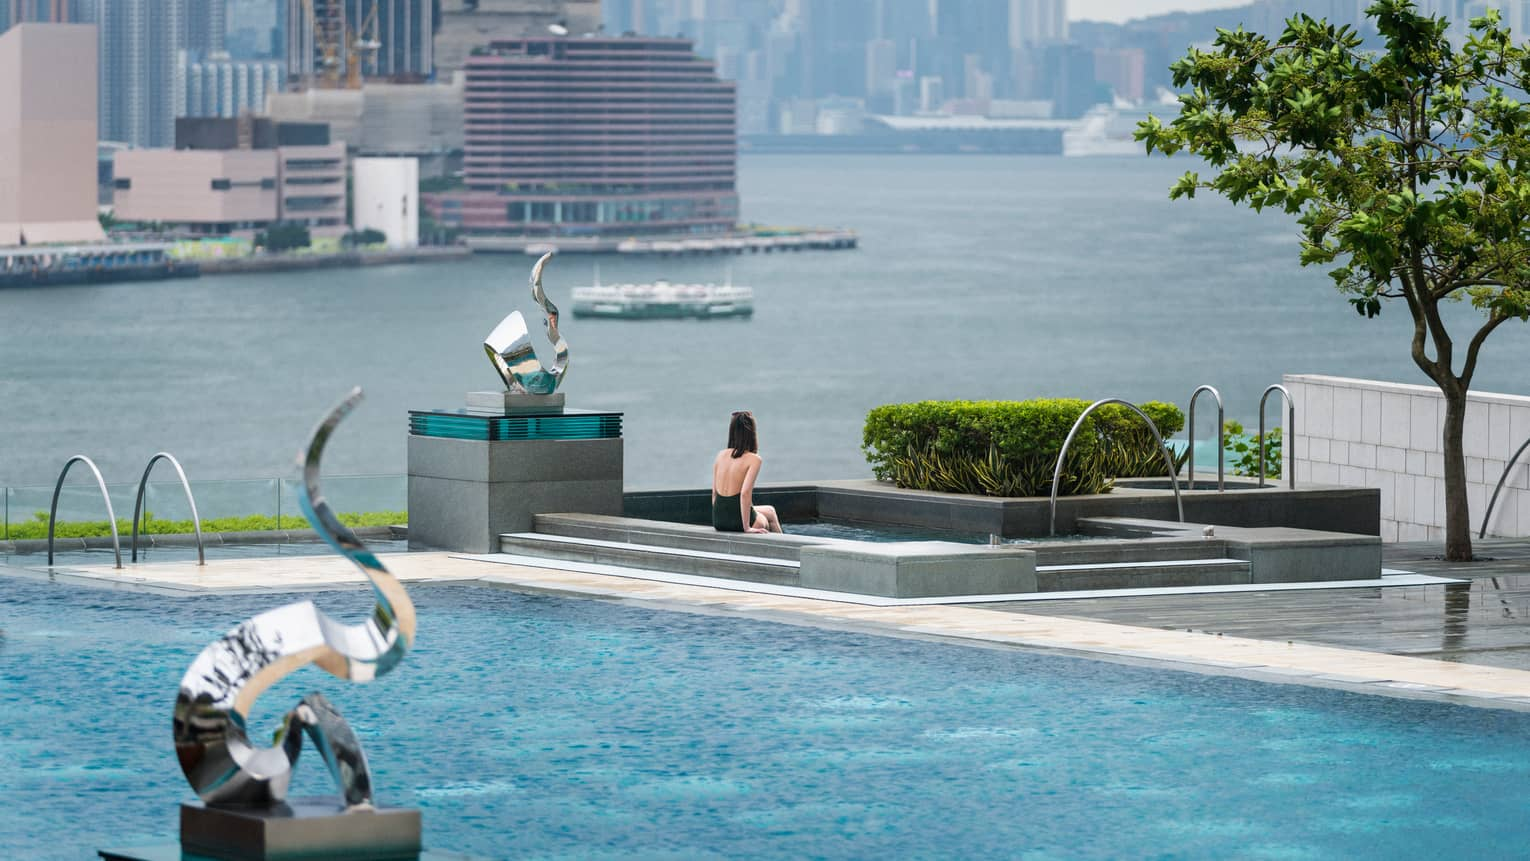 Woman in swimsuit sits on edge of swimming pool on patio near modern silver sculptures, waterfront